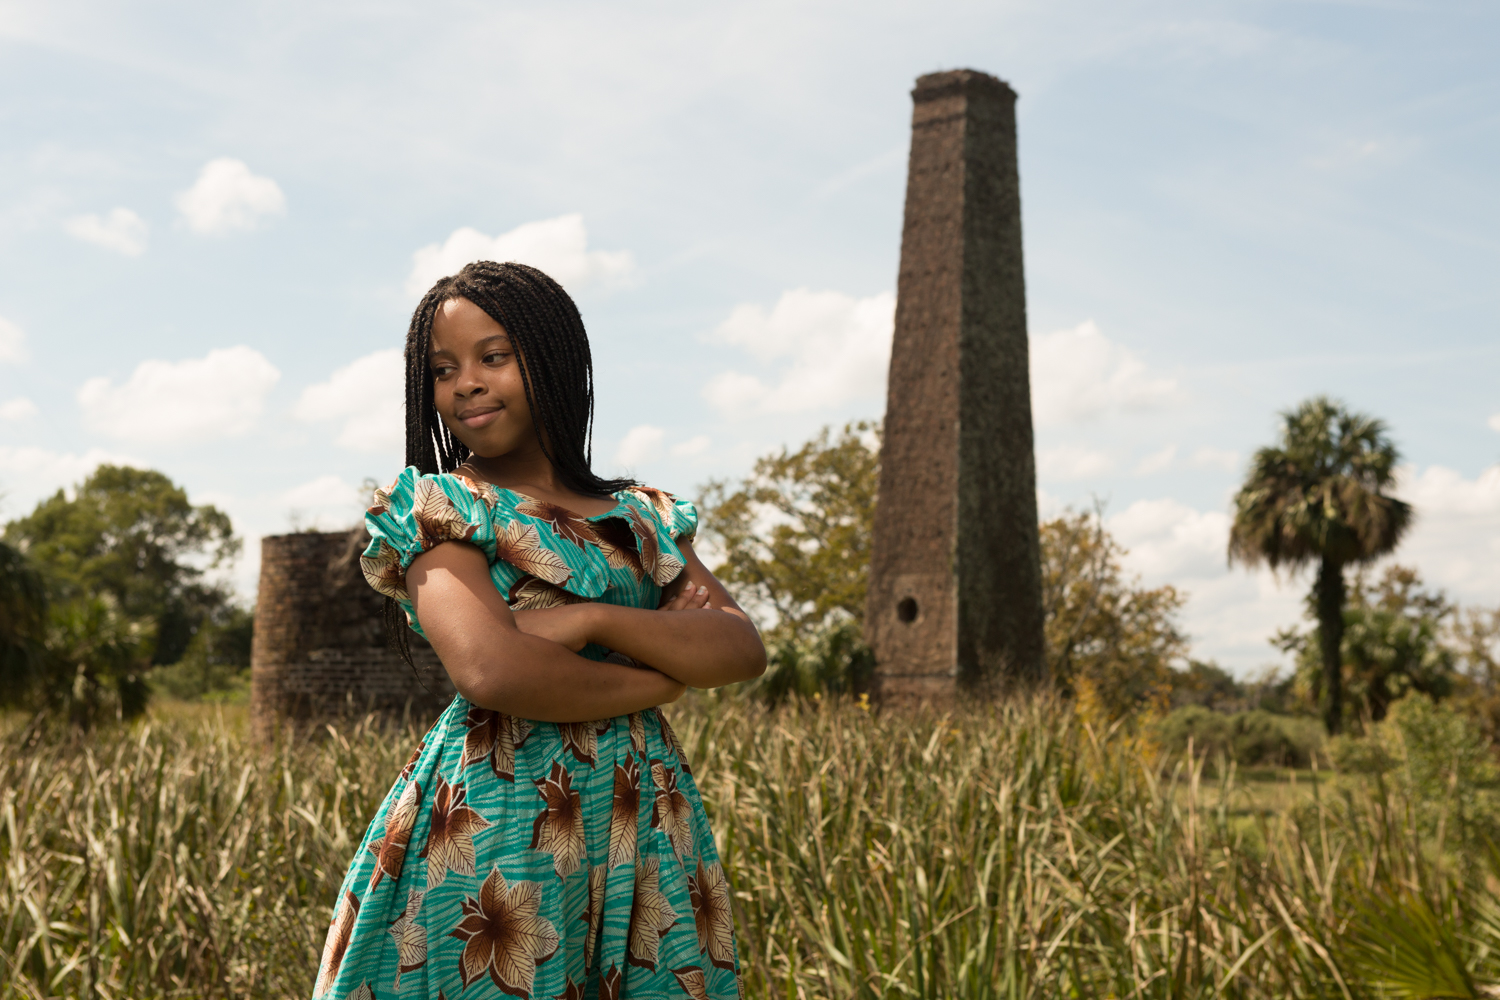 Tiffany Young's youngest daughter, Trinity, a descendant of the Butler Island slaves, seen here at Butler Plantation, is carrying on the traditions of her mother and the Gullah Geechee people. She is already a Geechee ring shouter, performing traditional songs and dances based in West African religious rituals—the oldest surviving African-American performing arts.